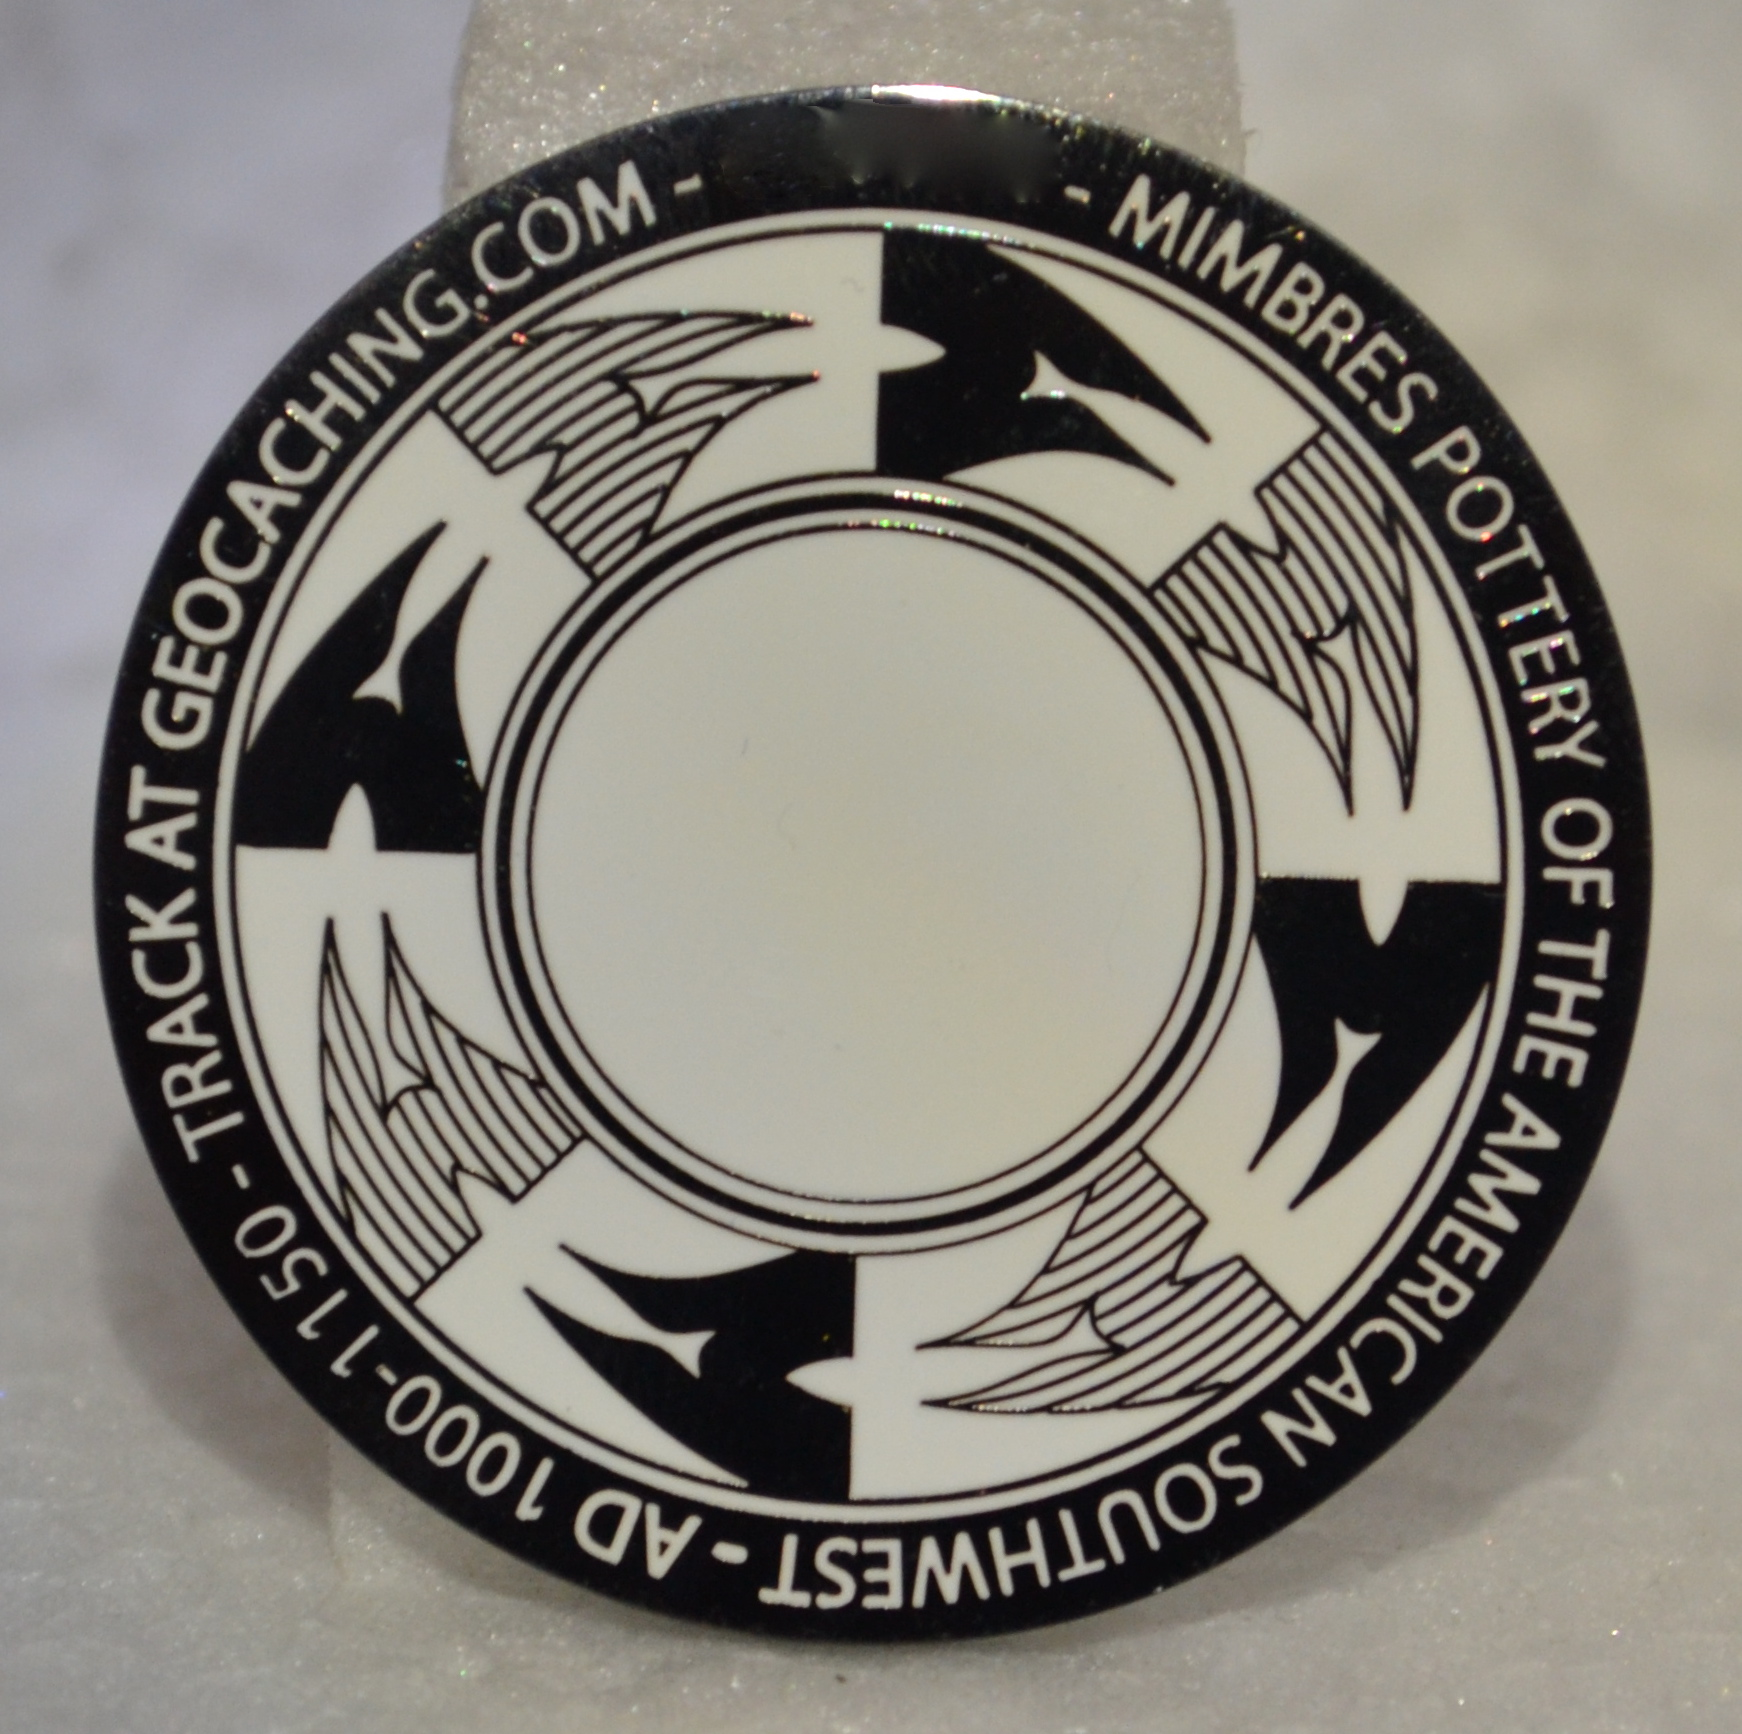 Mimbres 2.0 Geocoin - black nickel